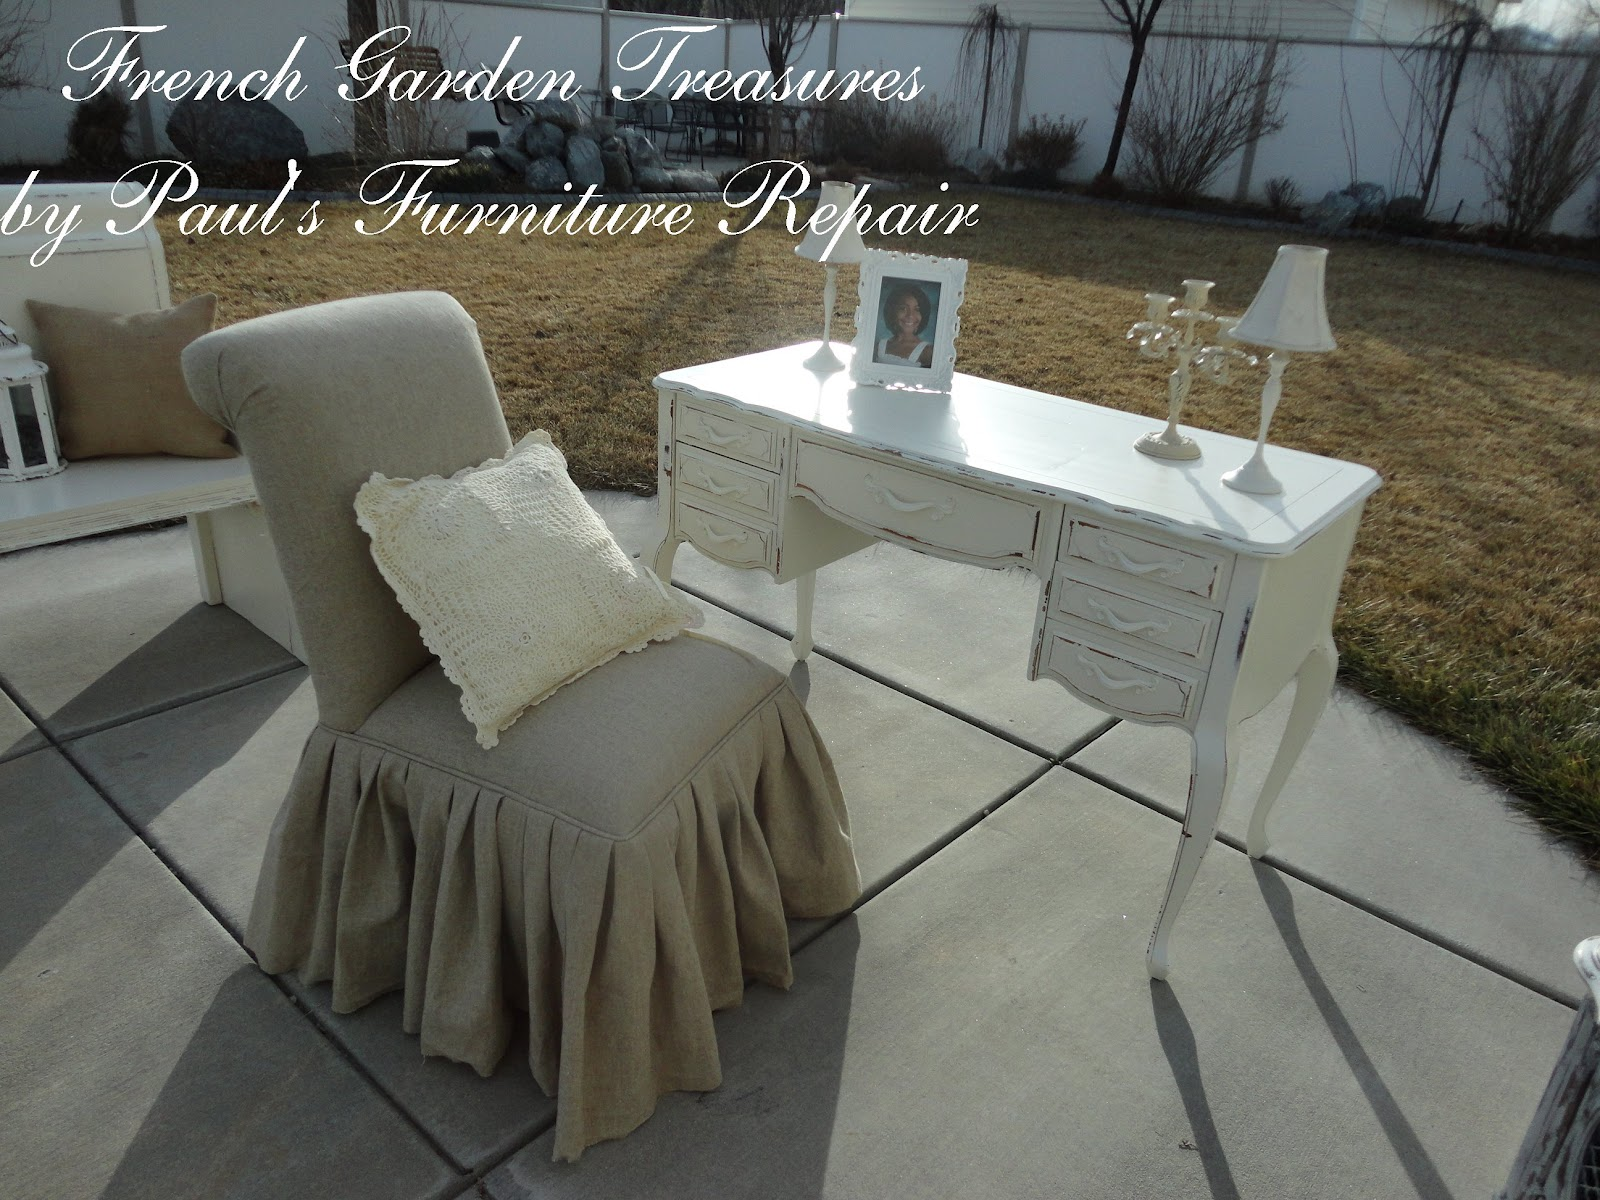 Feminine Executive Office Chairs Grey Chair French Garden Treasures